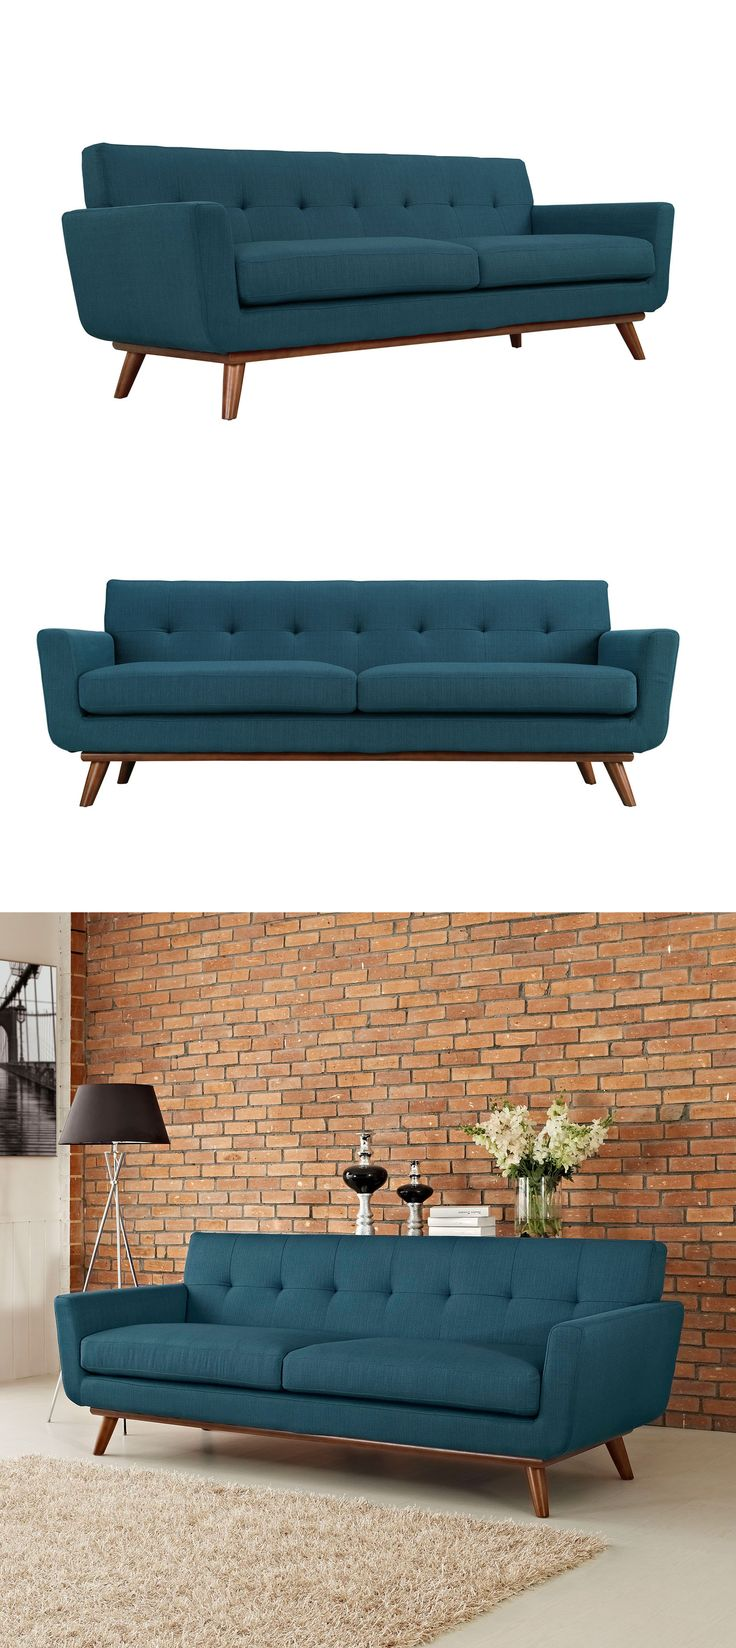 Couches Design best 10+ modern sofa ideas on pinterest | modern couch, midcentury